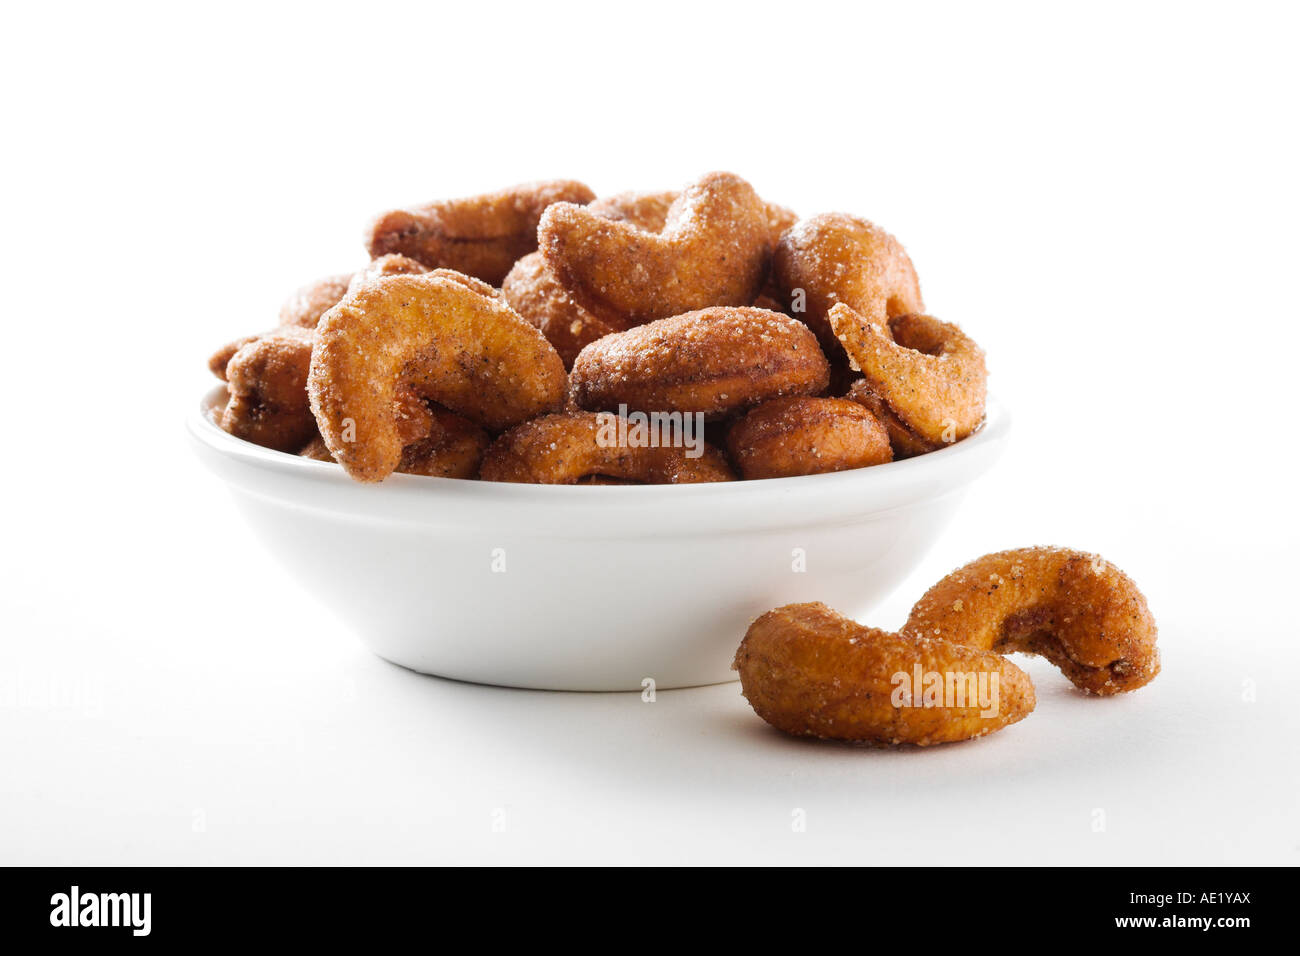 A bowl of cardemon cashews with white background cutout - Stock Image